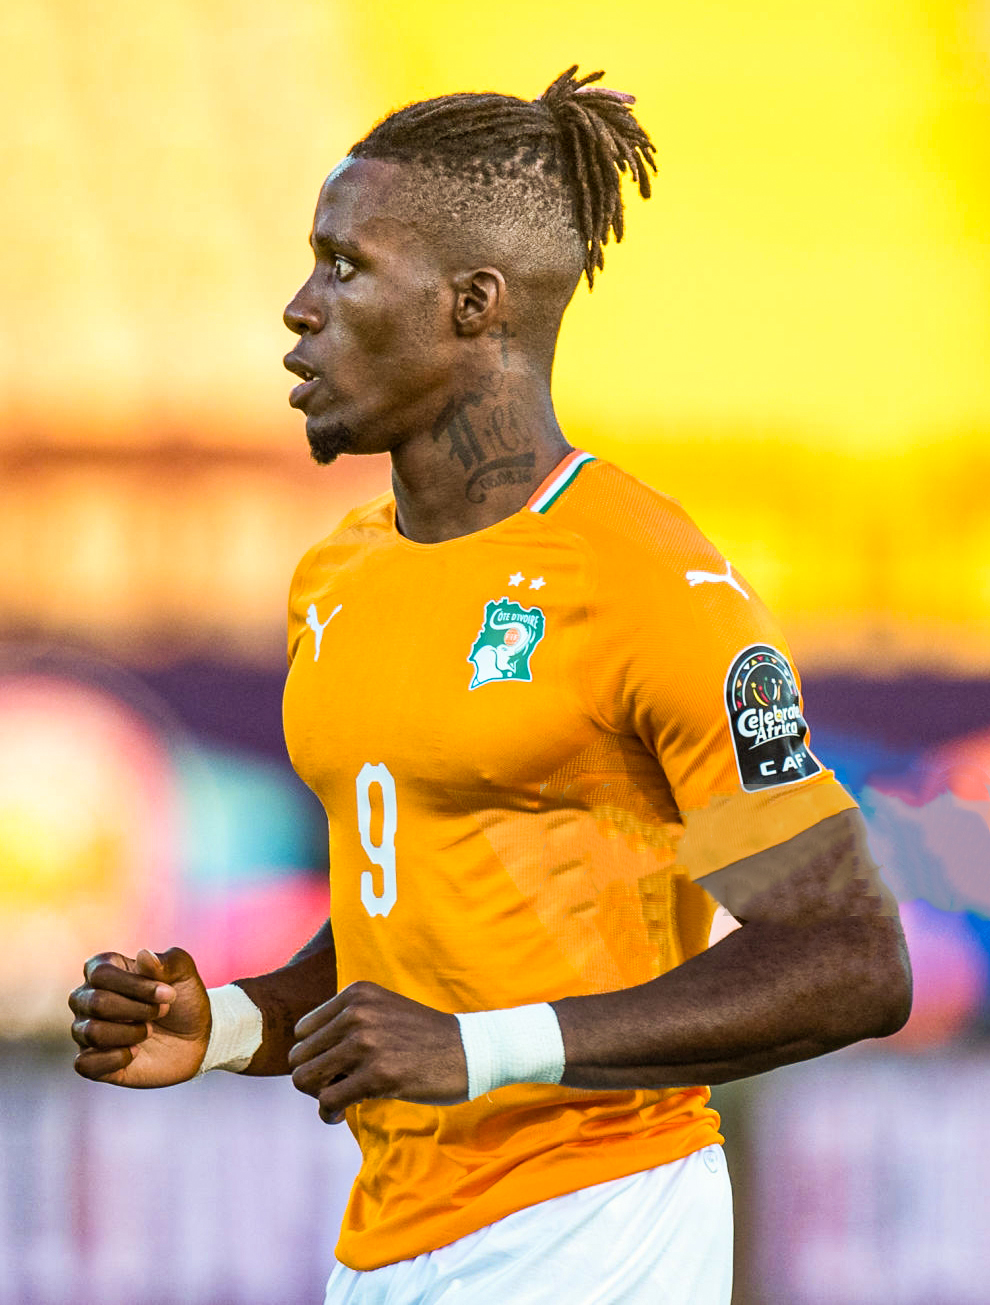 CAIRO, EGYPT - JUNE 24: Wilfried Zaha of Cote d'Ivoire looks on during the 2019 Africa Cup of Nations Group D match between Cote d'Ivoire and South Africa at Al-Salam Stadium on June 24, 2019 in Cairo, Egypt. (Photo by Sebastian Frej/MB Media/Getty Images)